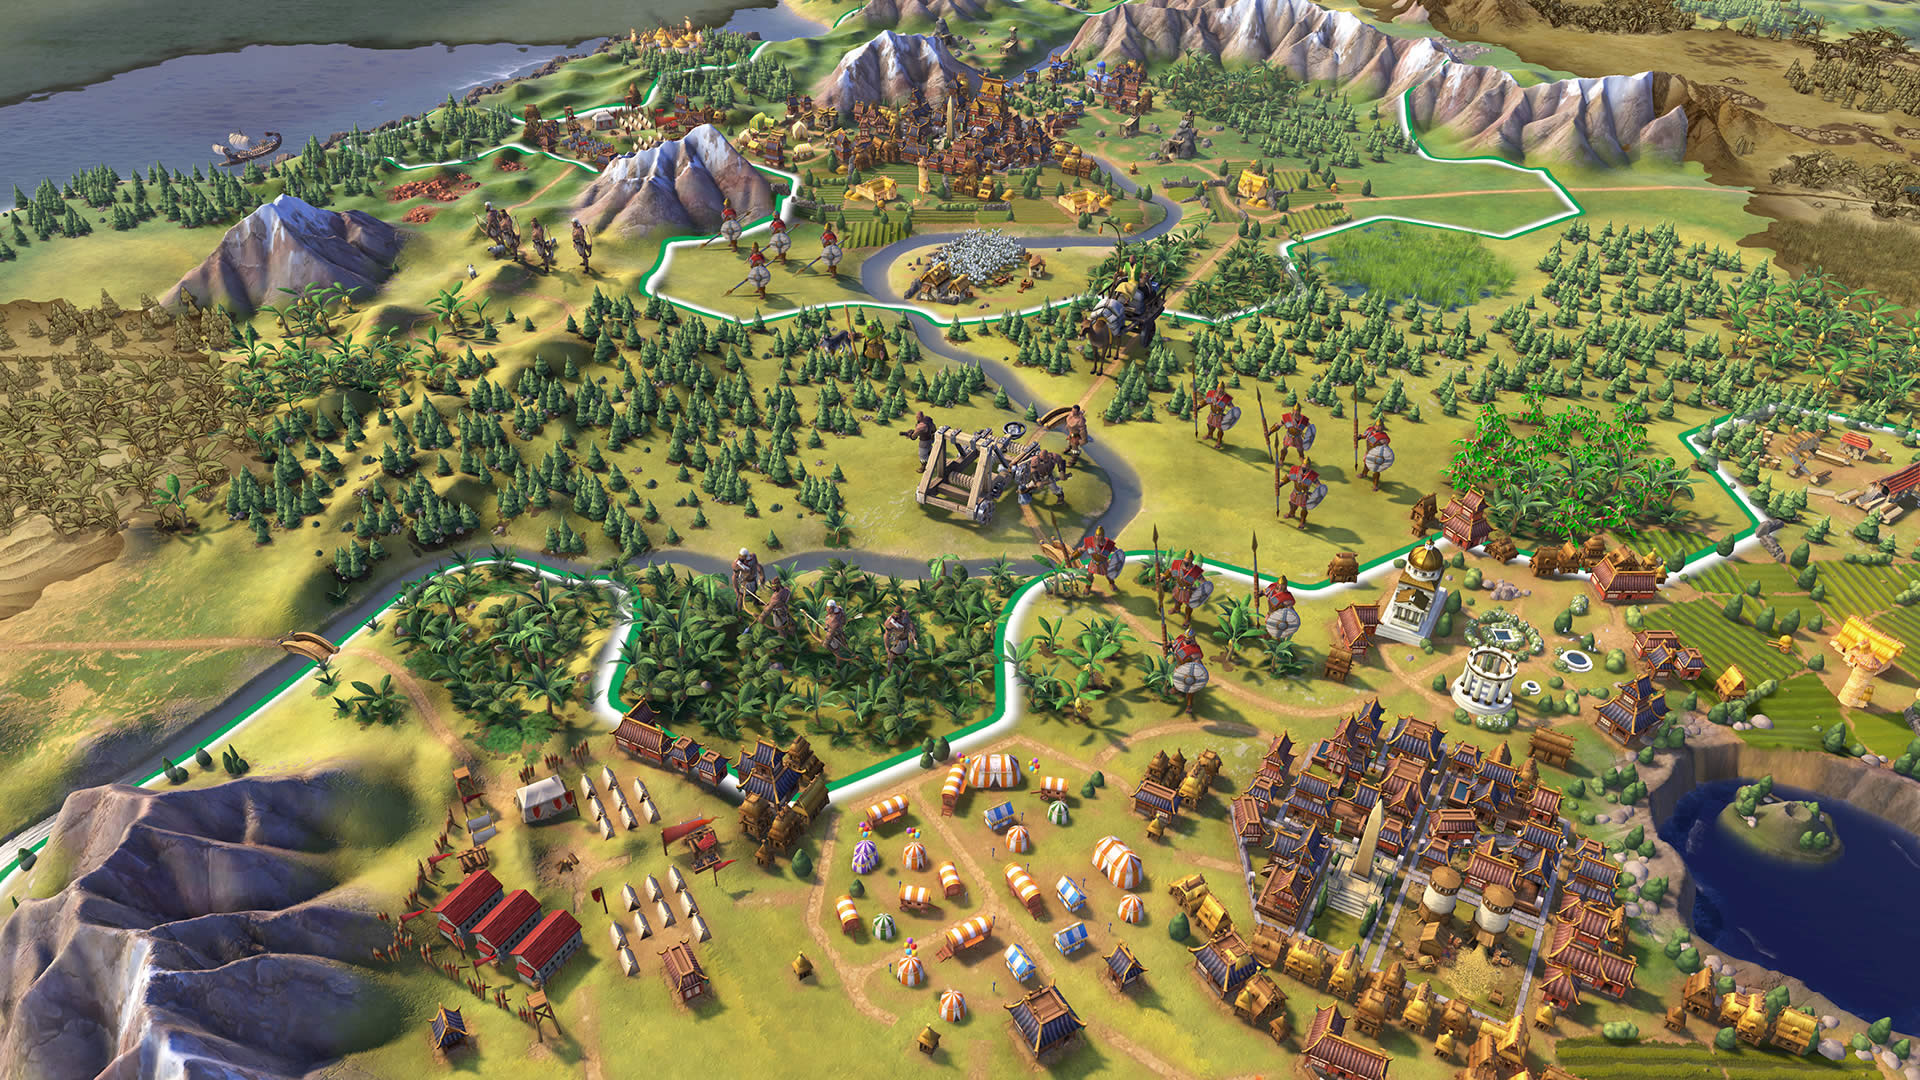 Save 23% on Civilization VI with this pre-order deal screenshot